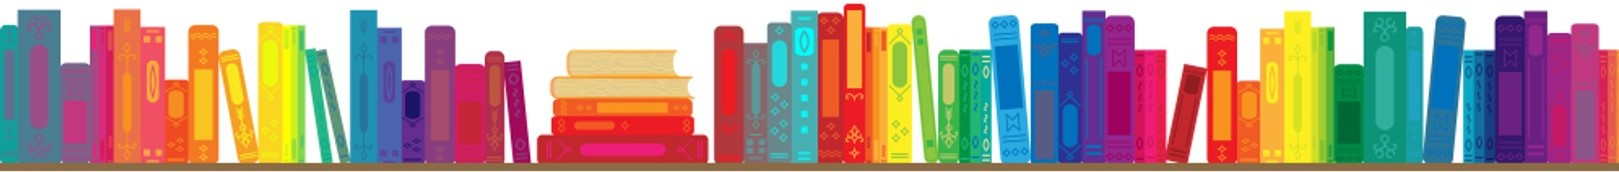 vector-illustration-rainbow-color-books-260nw-1588028482